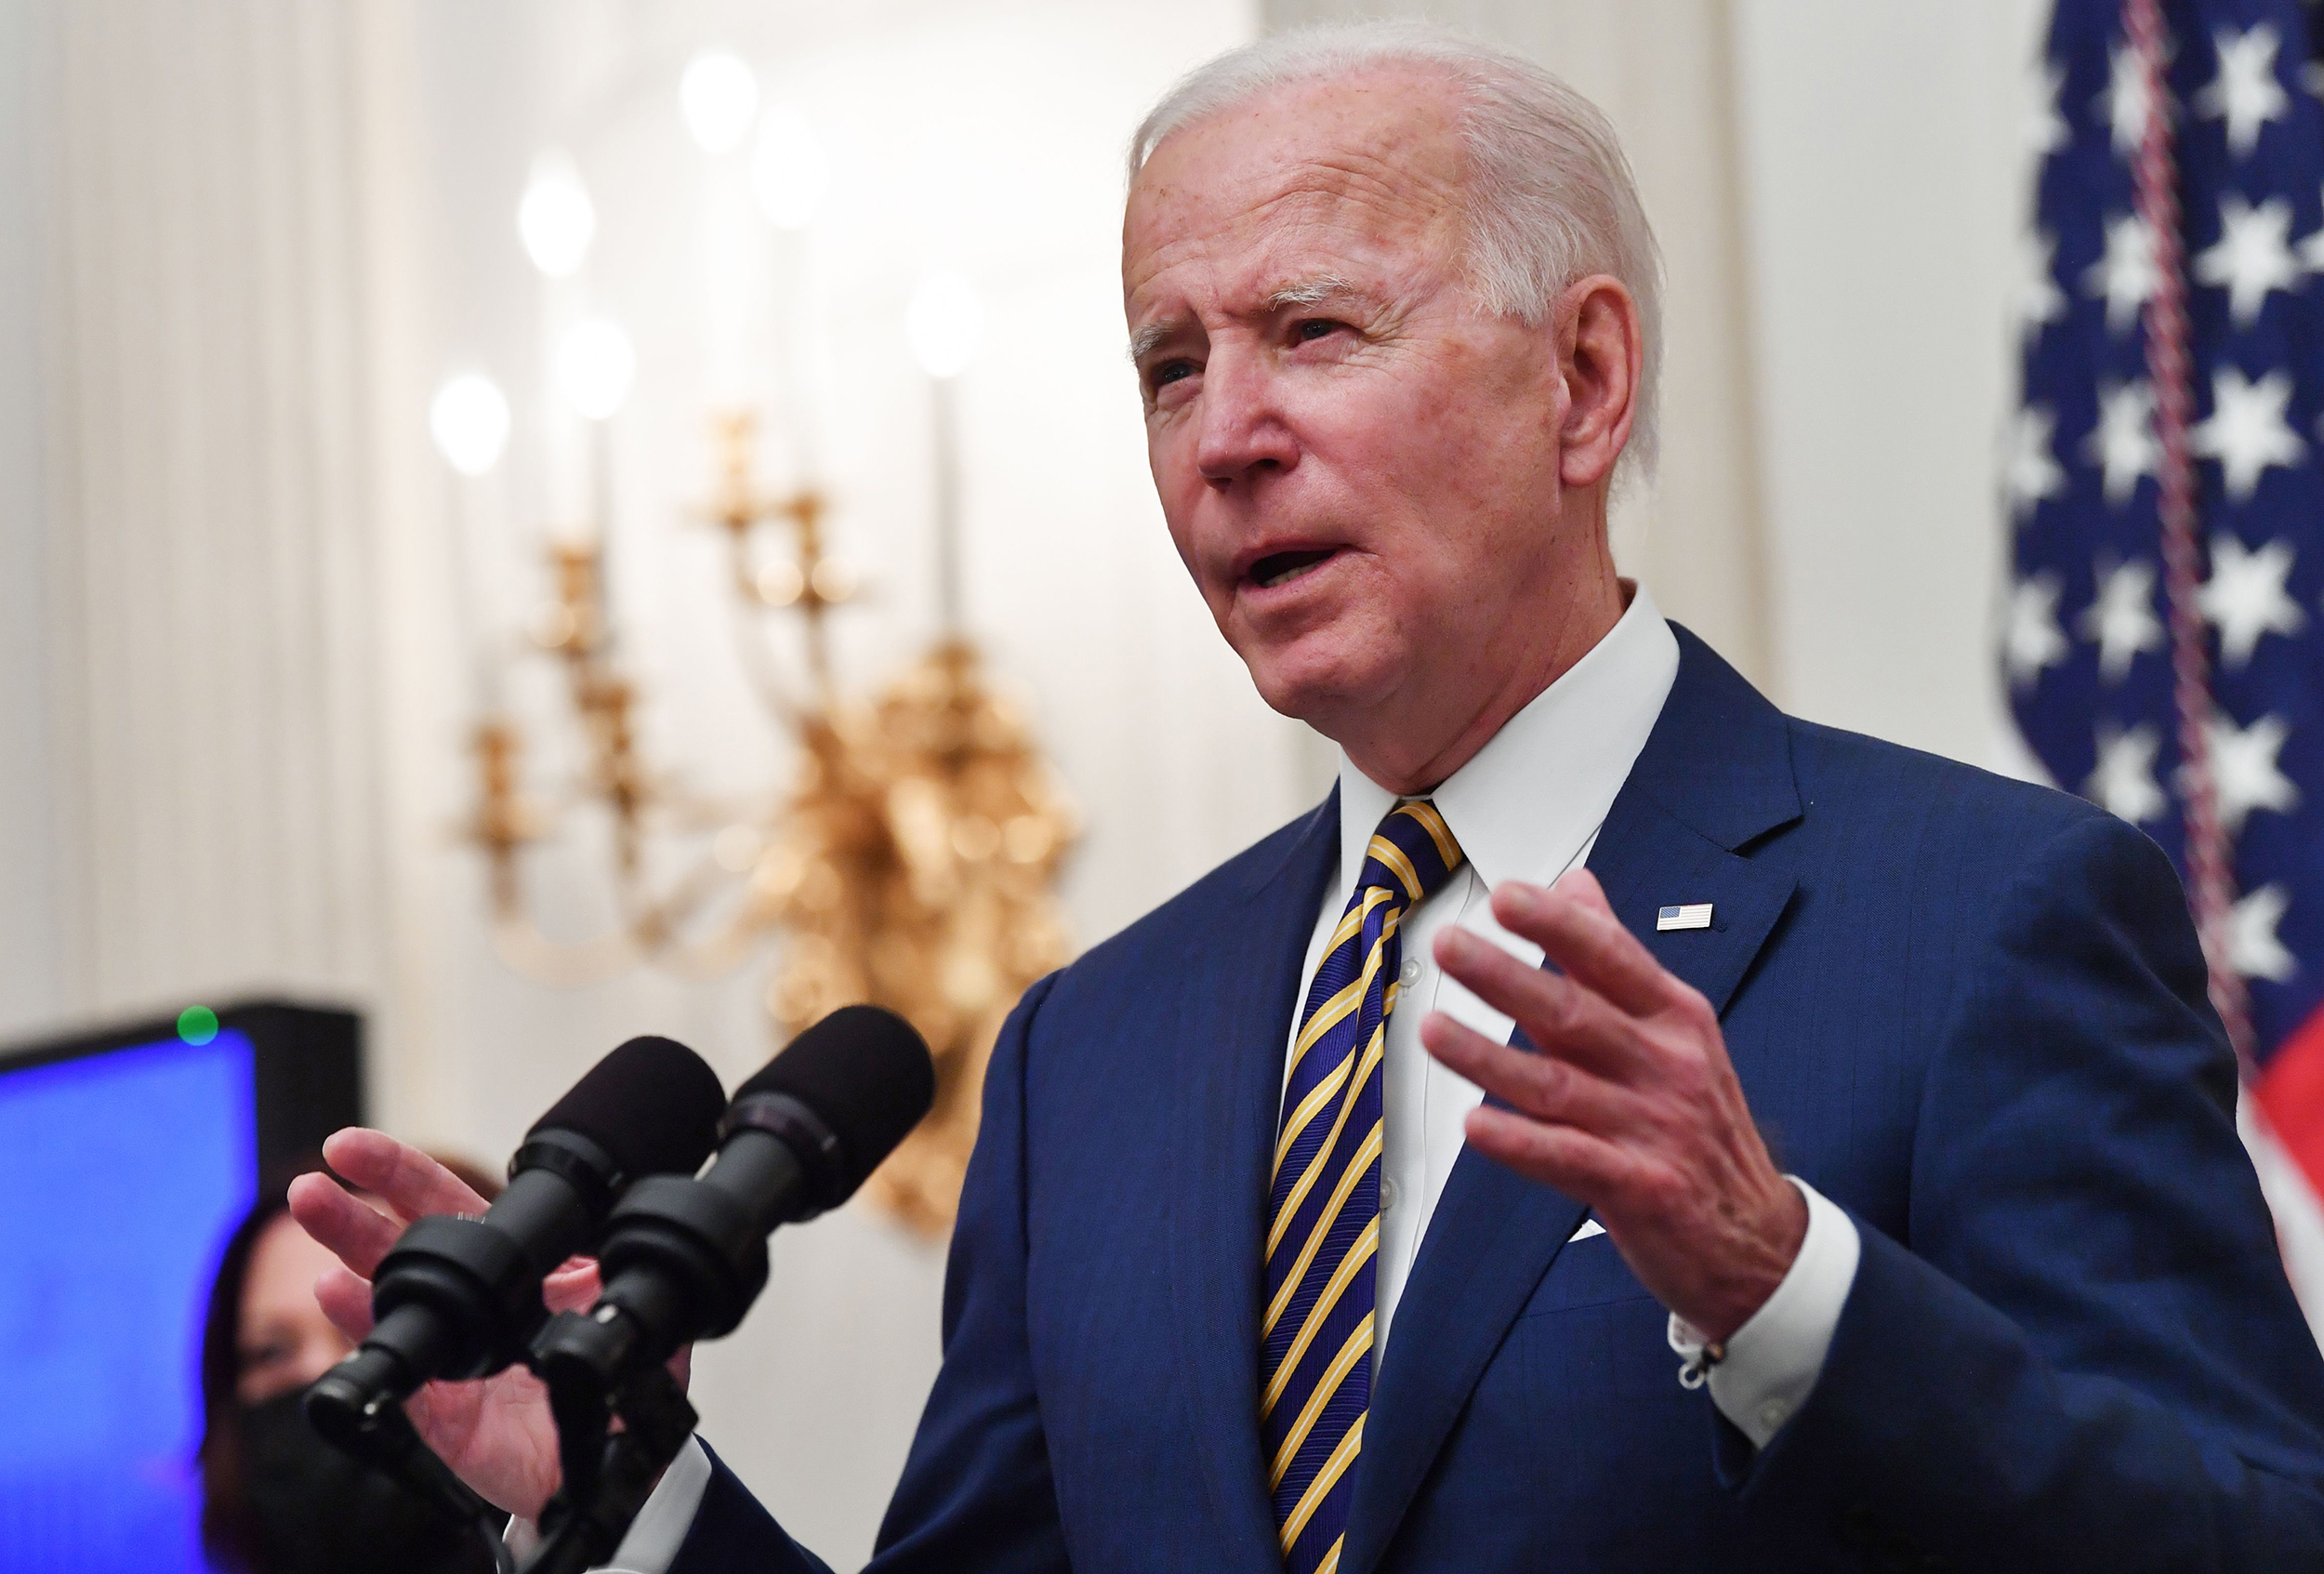 Fact-checking 7 statistical claims from Biden's (quite factual) economic speech